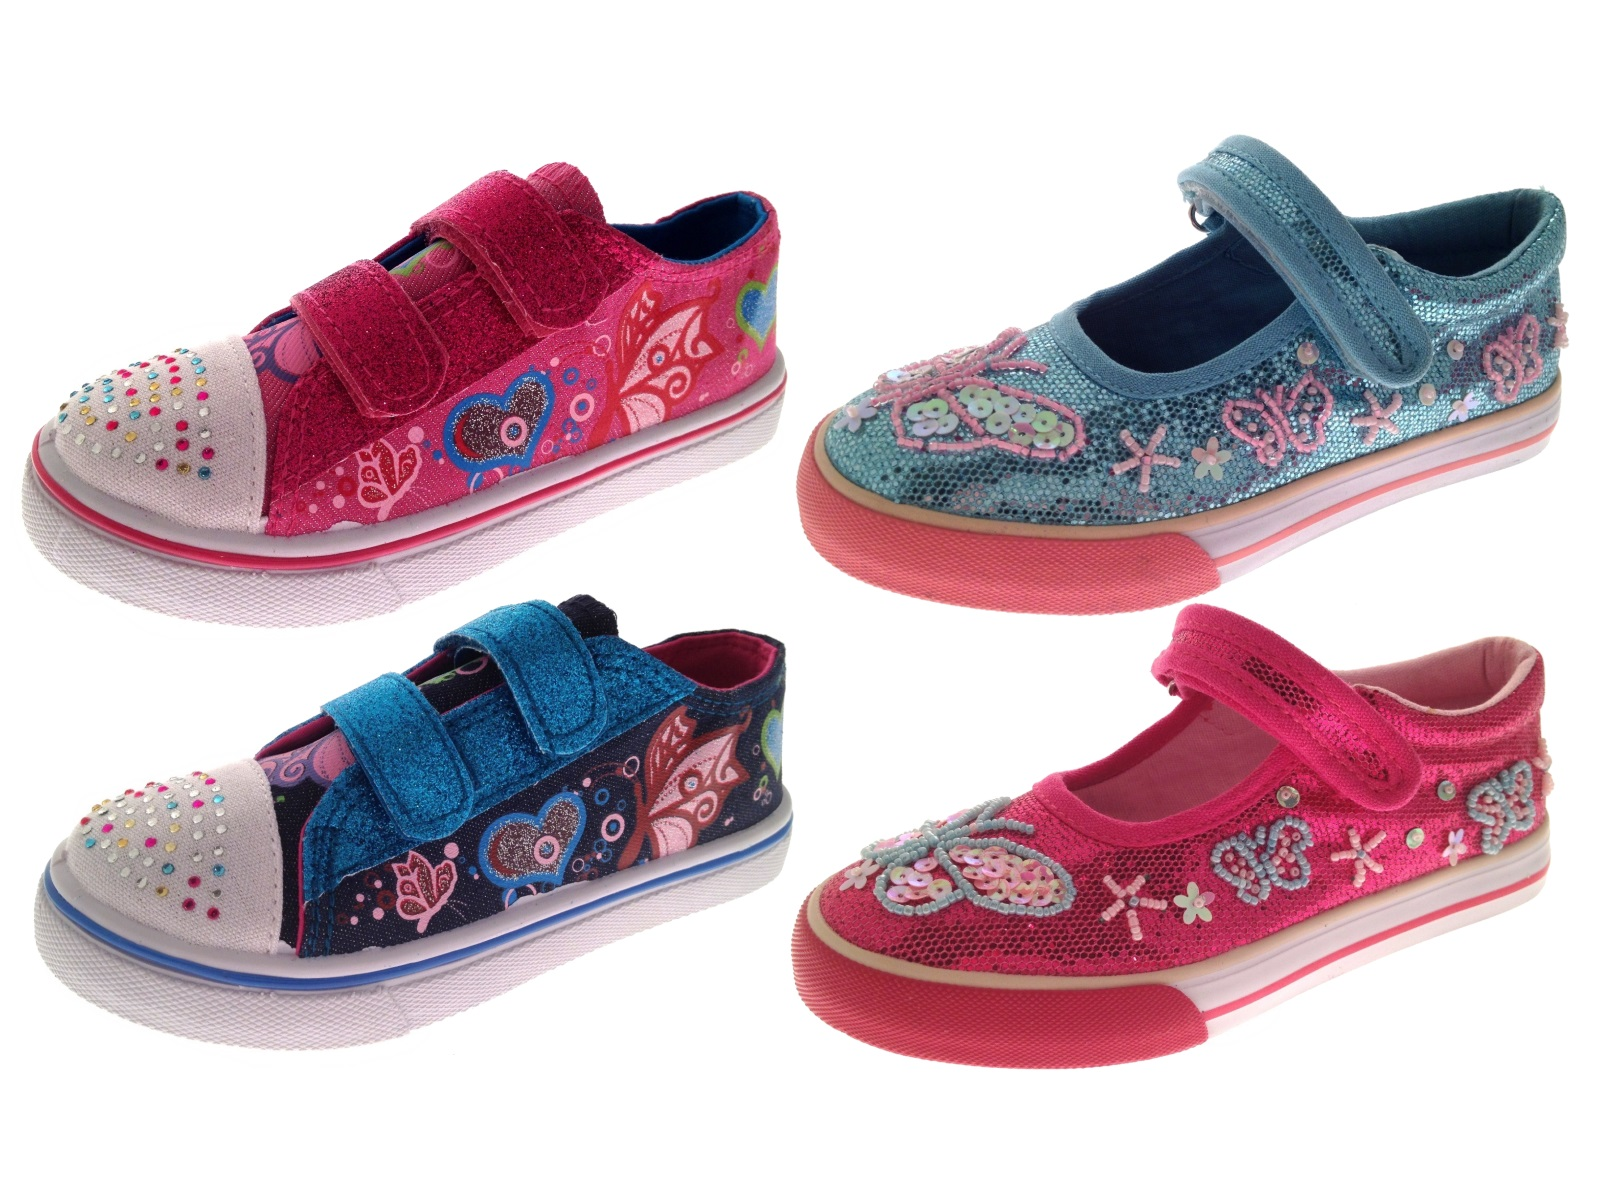 Shop for pink glitter shoes girls online at Target. Free shipping on purchases over $35 and save 5% every day with your Target REDcard.